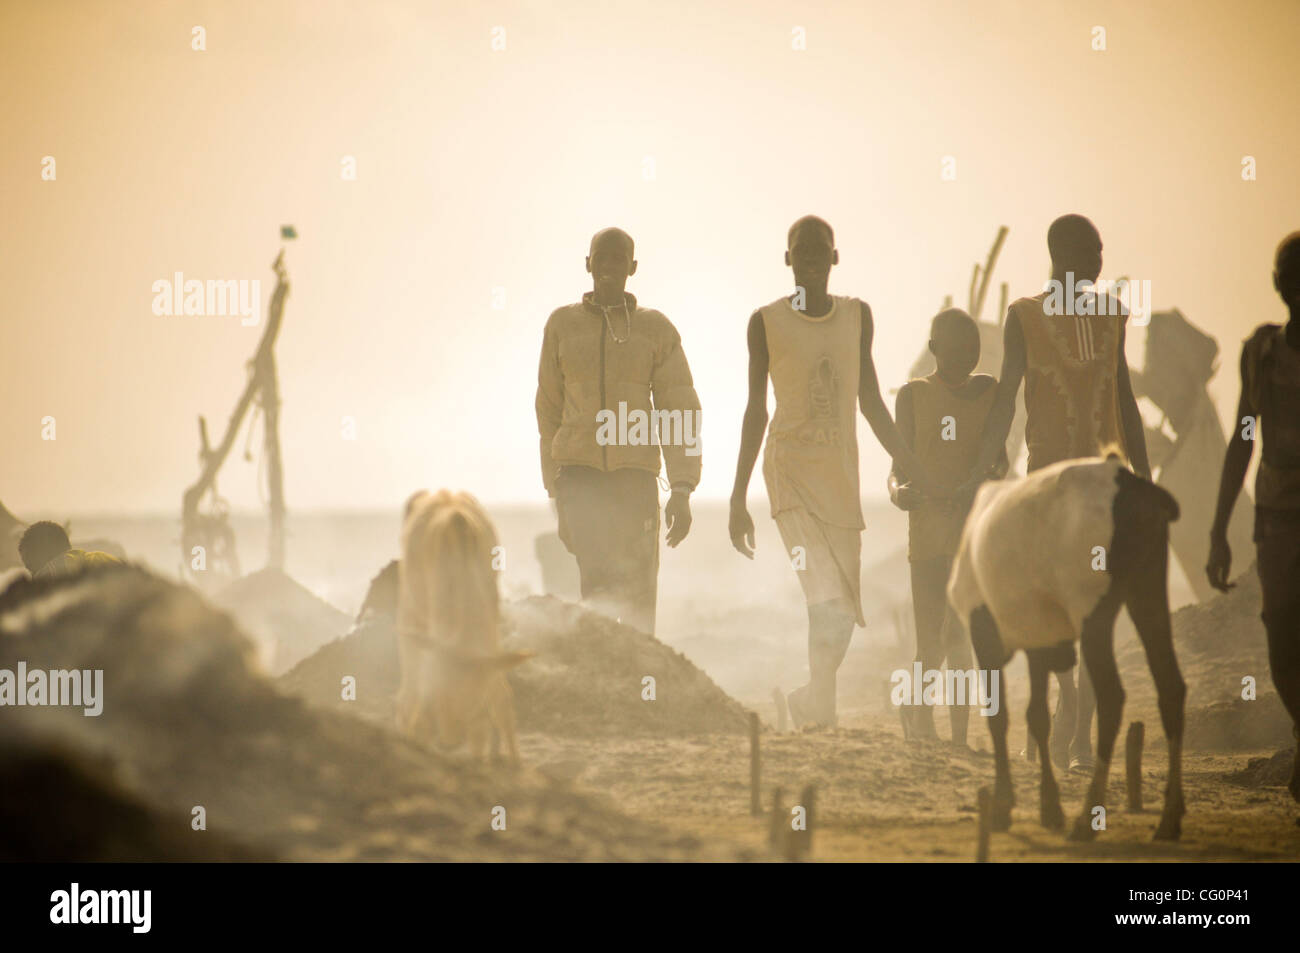 Jul. 11, 2007 - Kolmerek, South Sudan - For countless generations, cattle has played a central role in the life - Stock Image